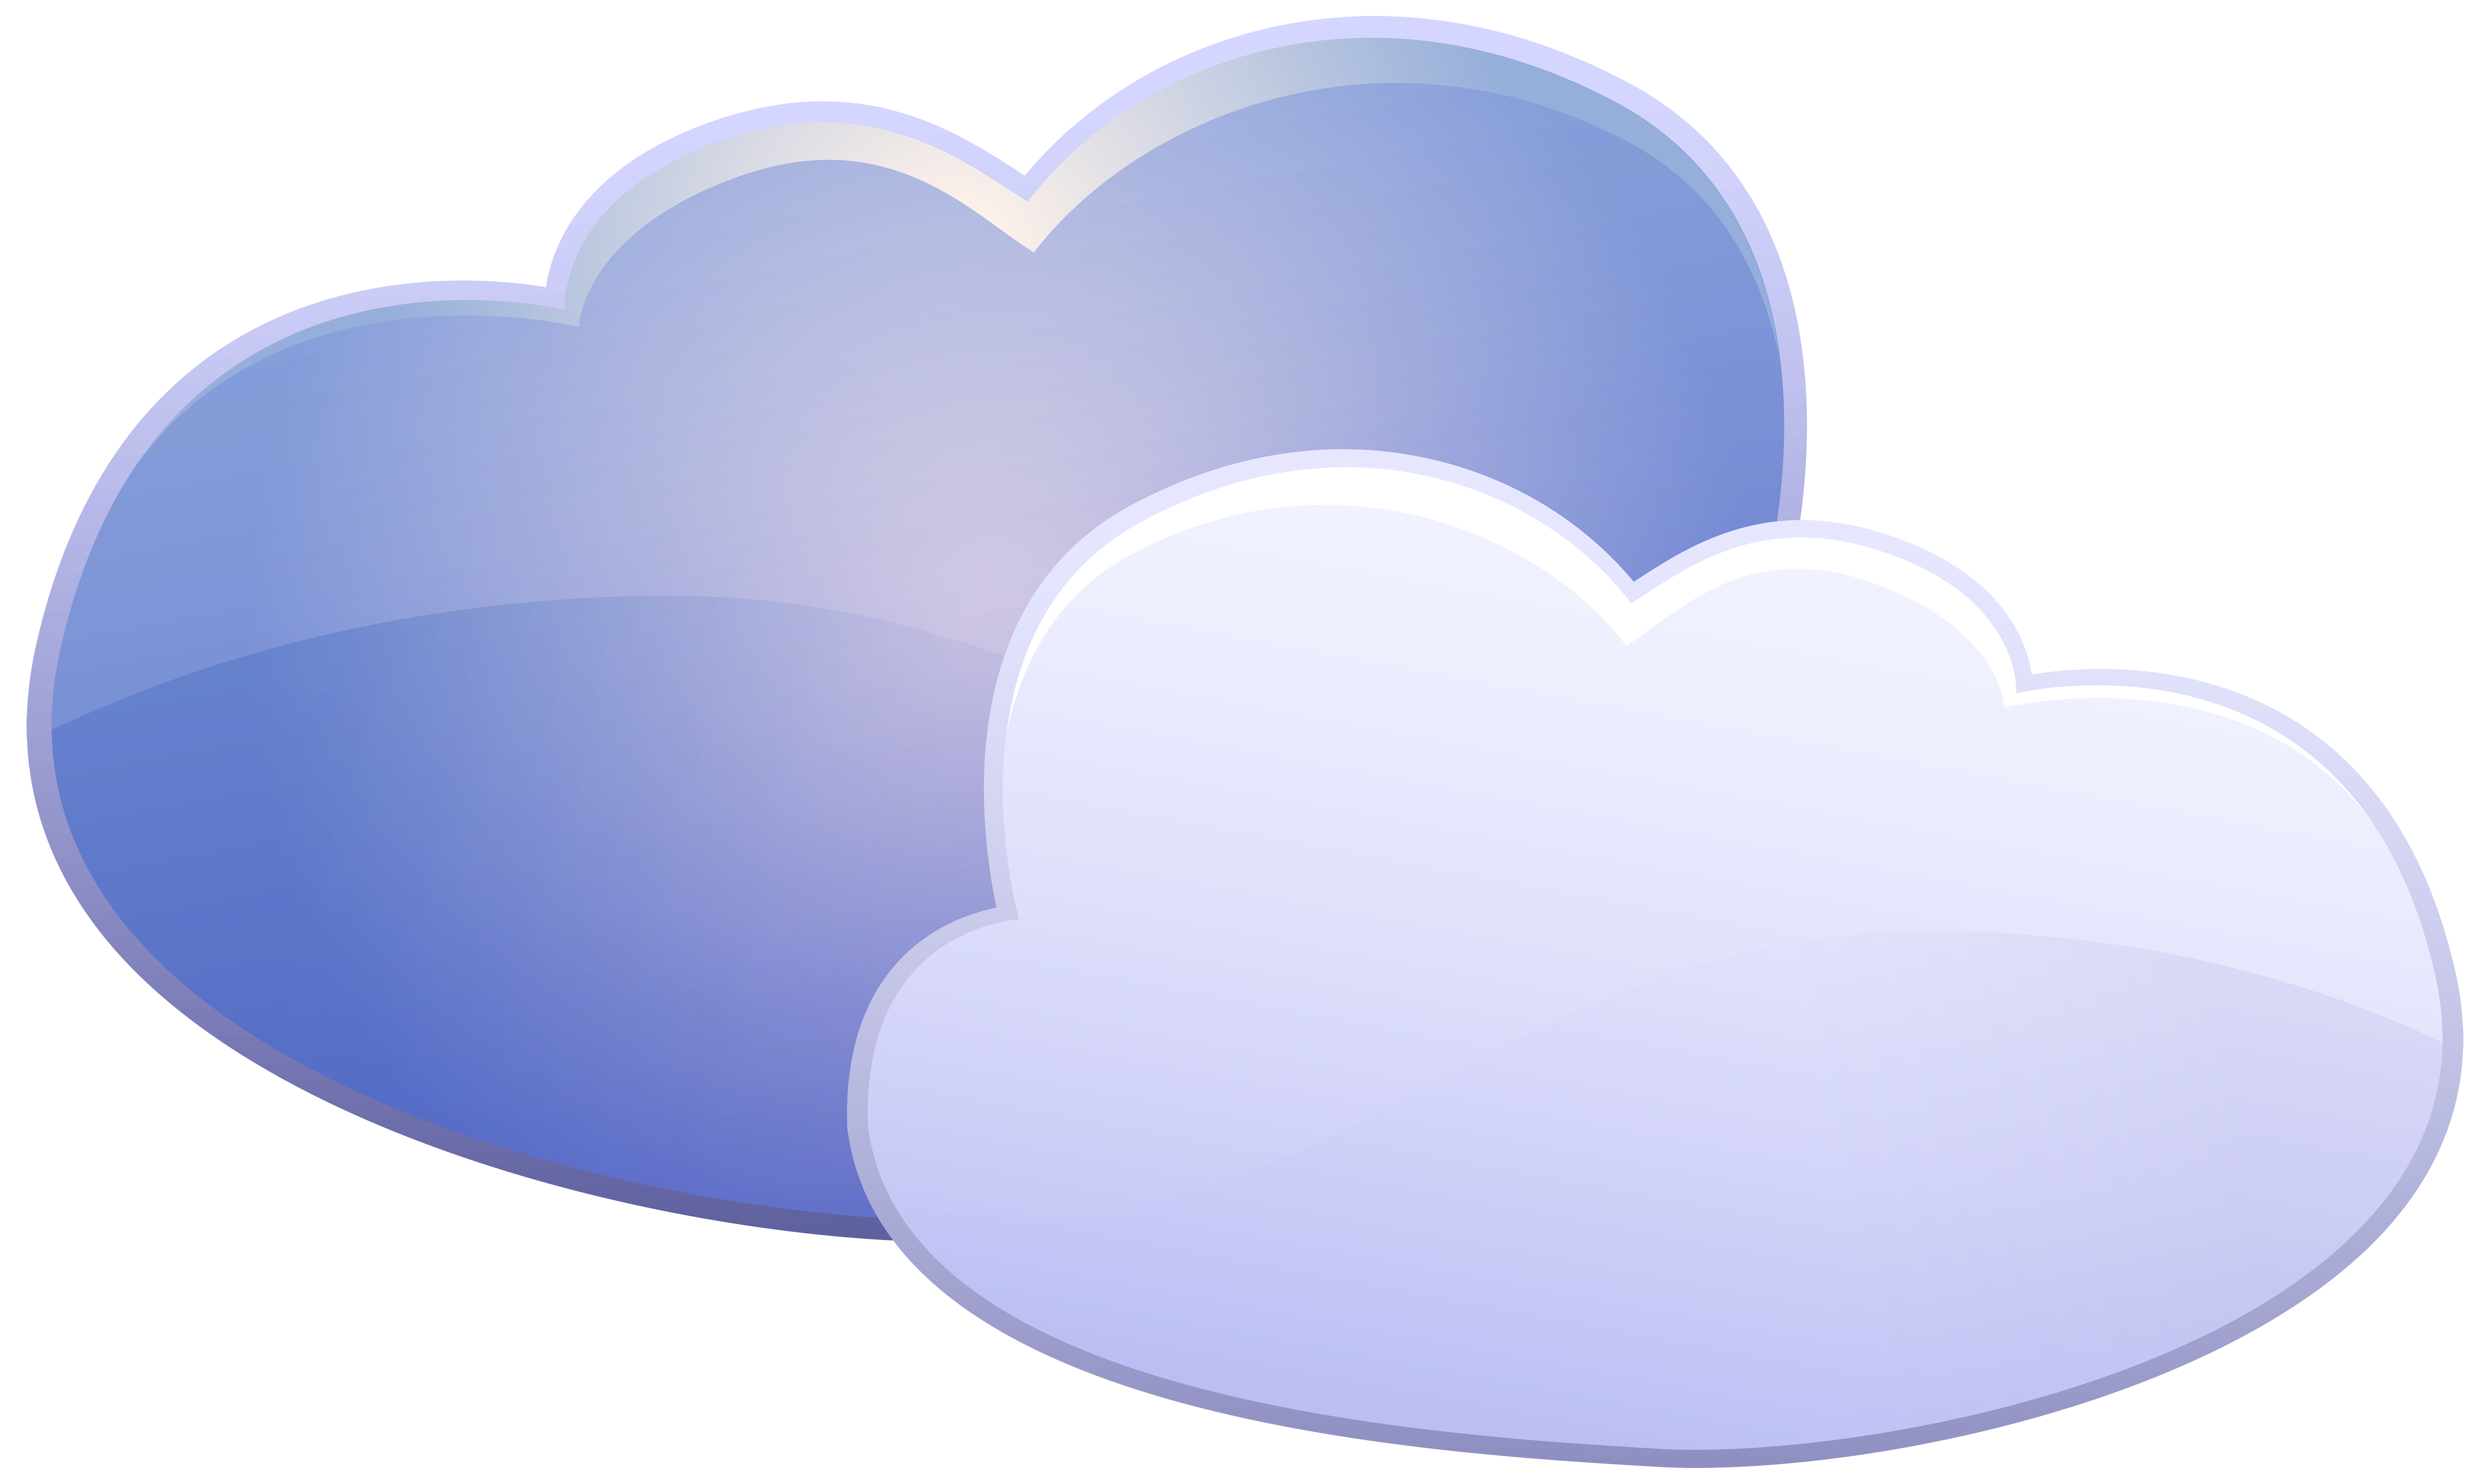 Clipart road sky. Clouds weather icon png